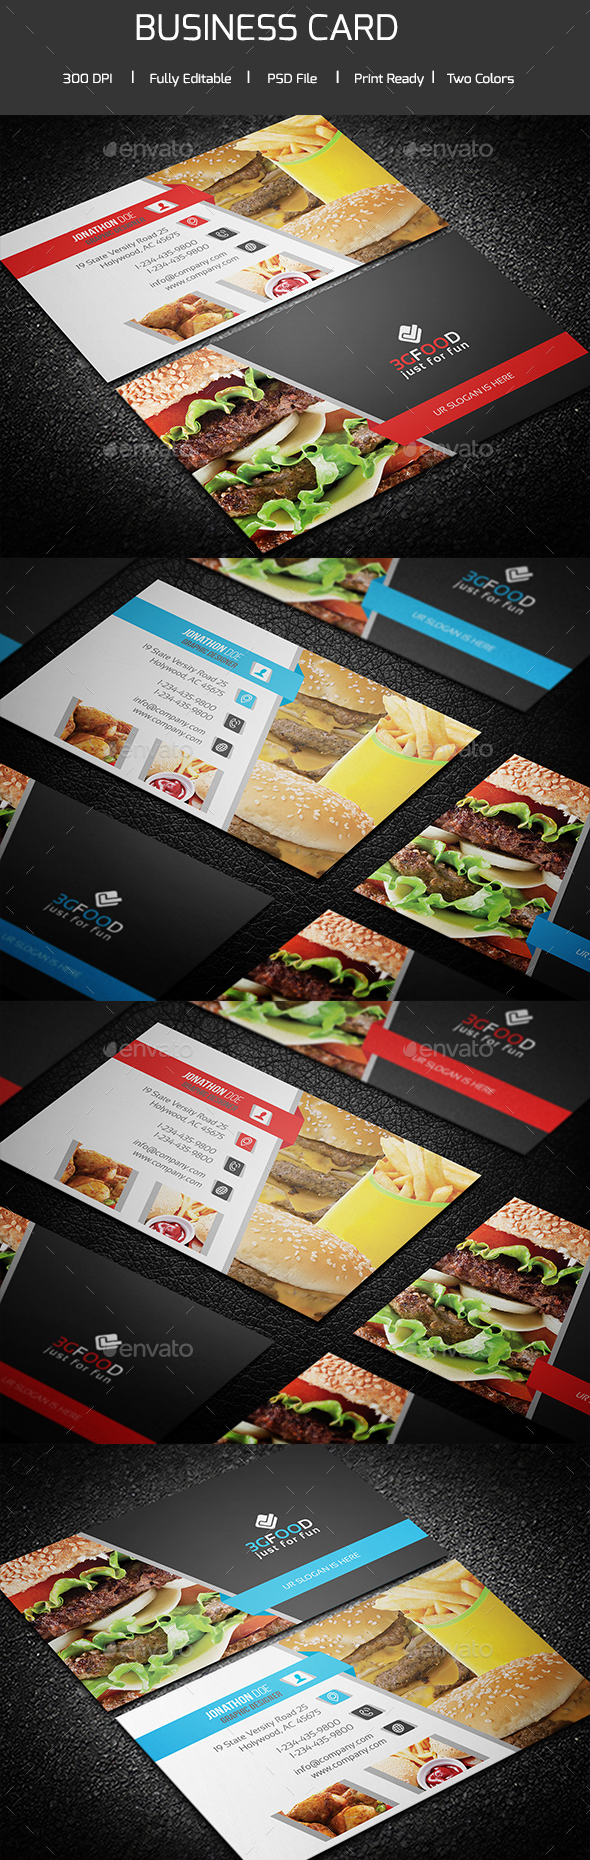 Simple Restaurant Business Card - Corporate Business Cards